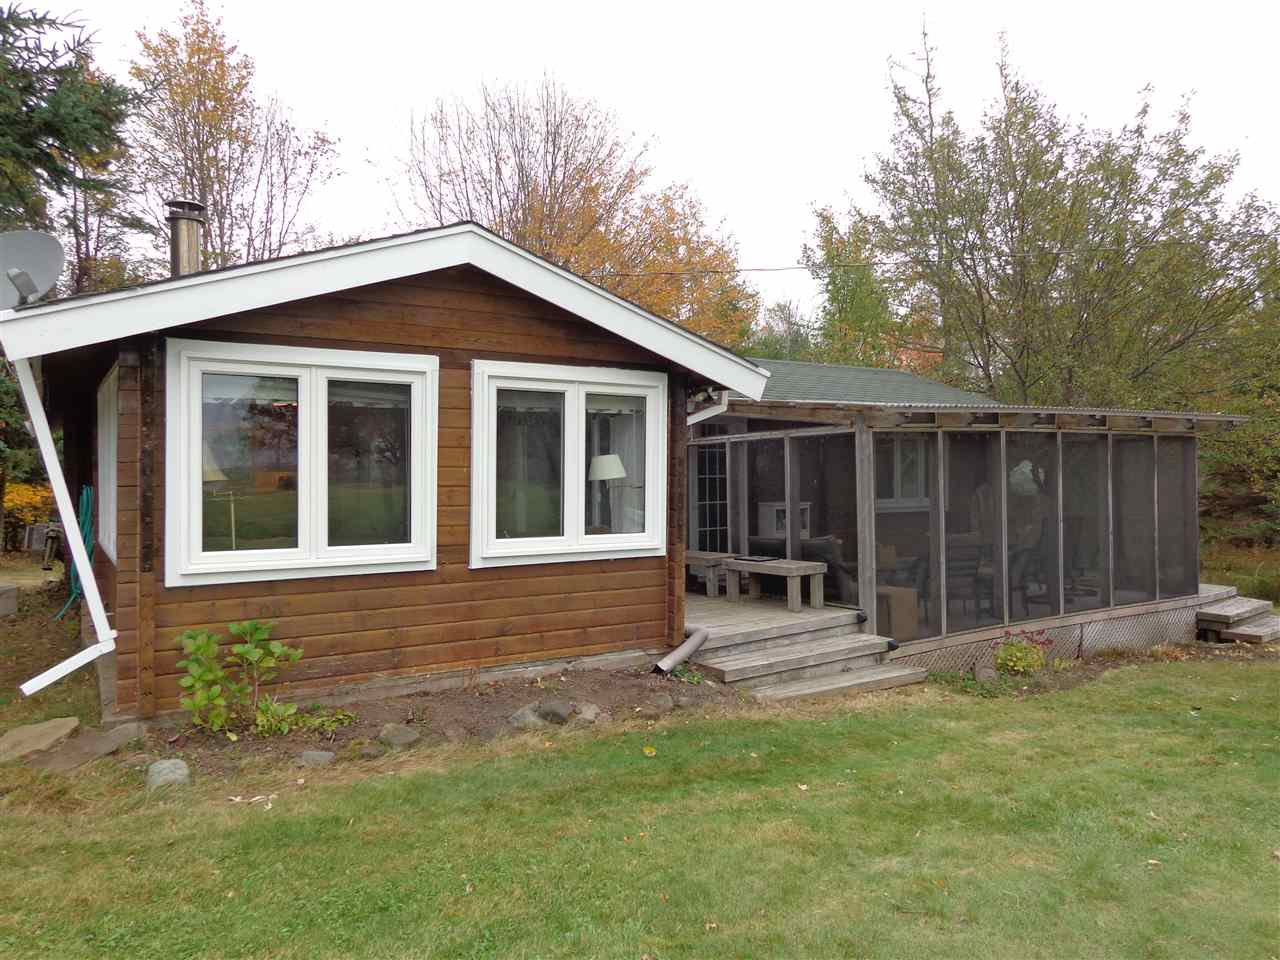 Main Photo: 100 Kenneth Road in Caribou Island: 108-Rural Pictou County Residential for sale (Northern Region)  : MLS®# 202010960